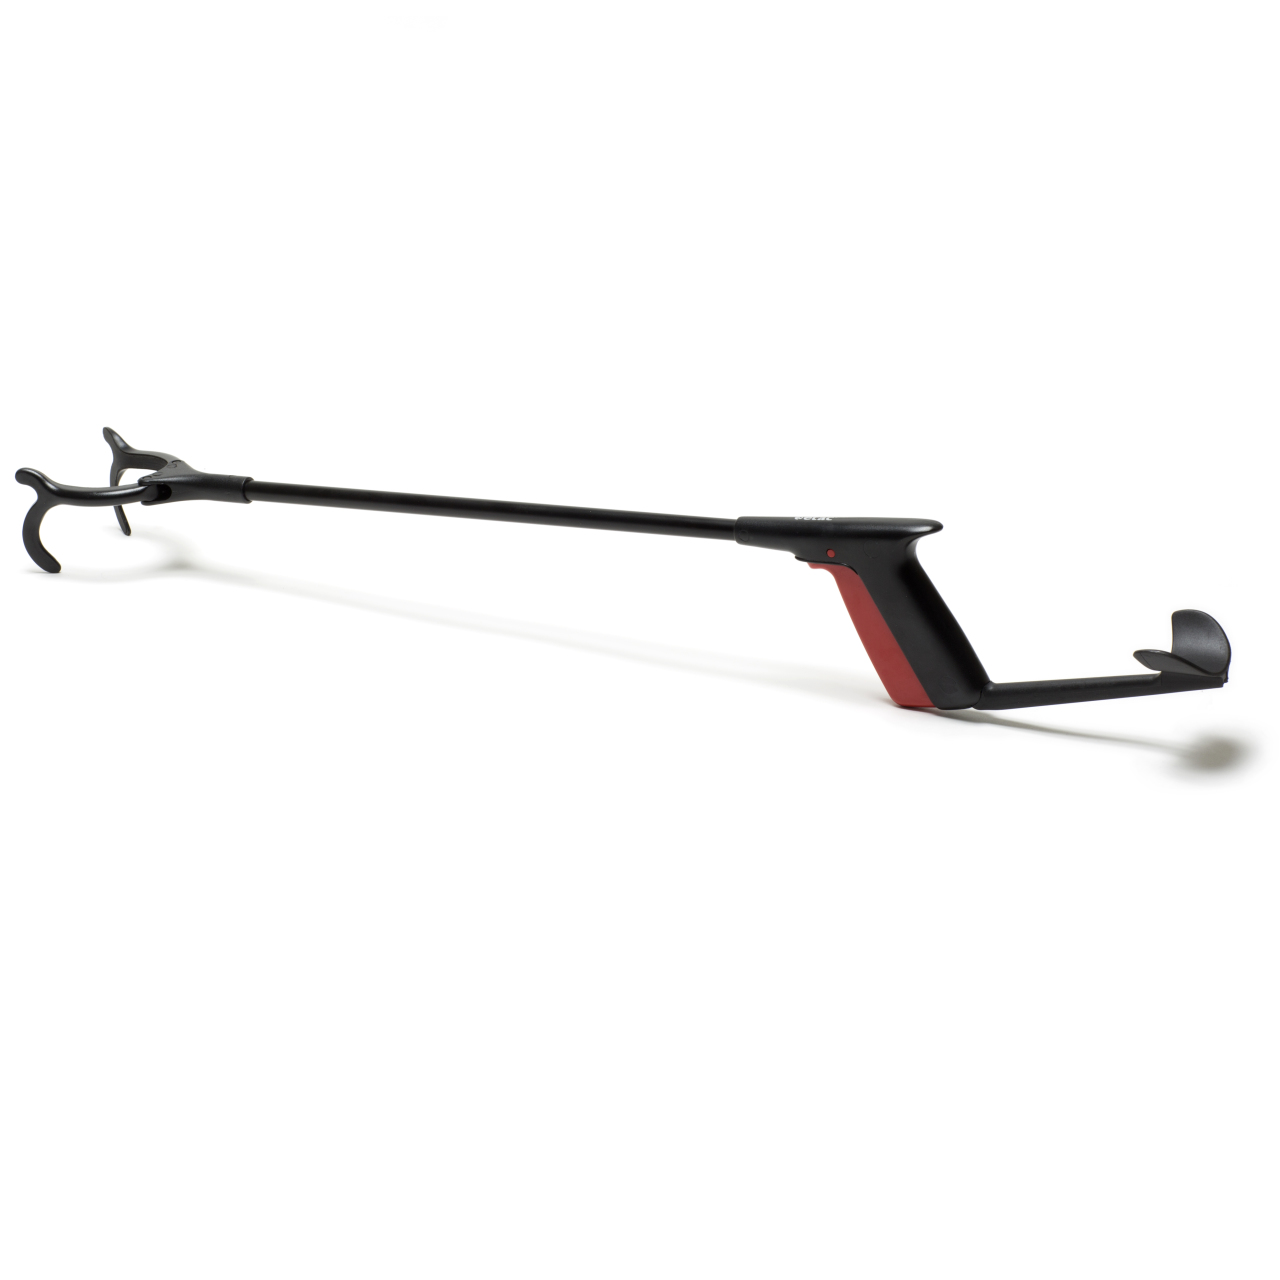 Aktiv reacher with power grip and hook.